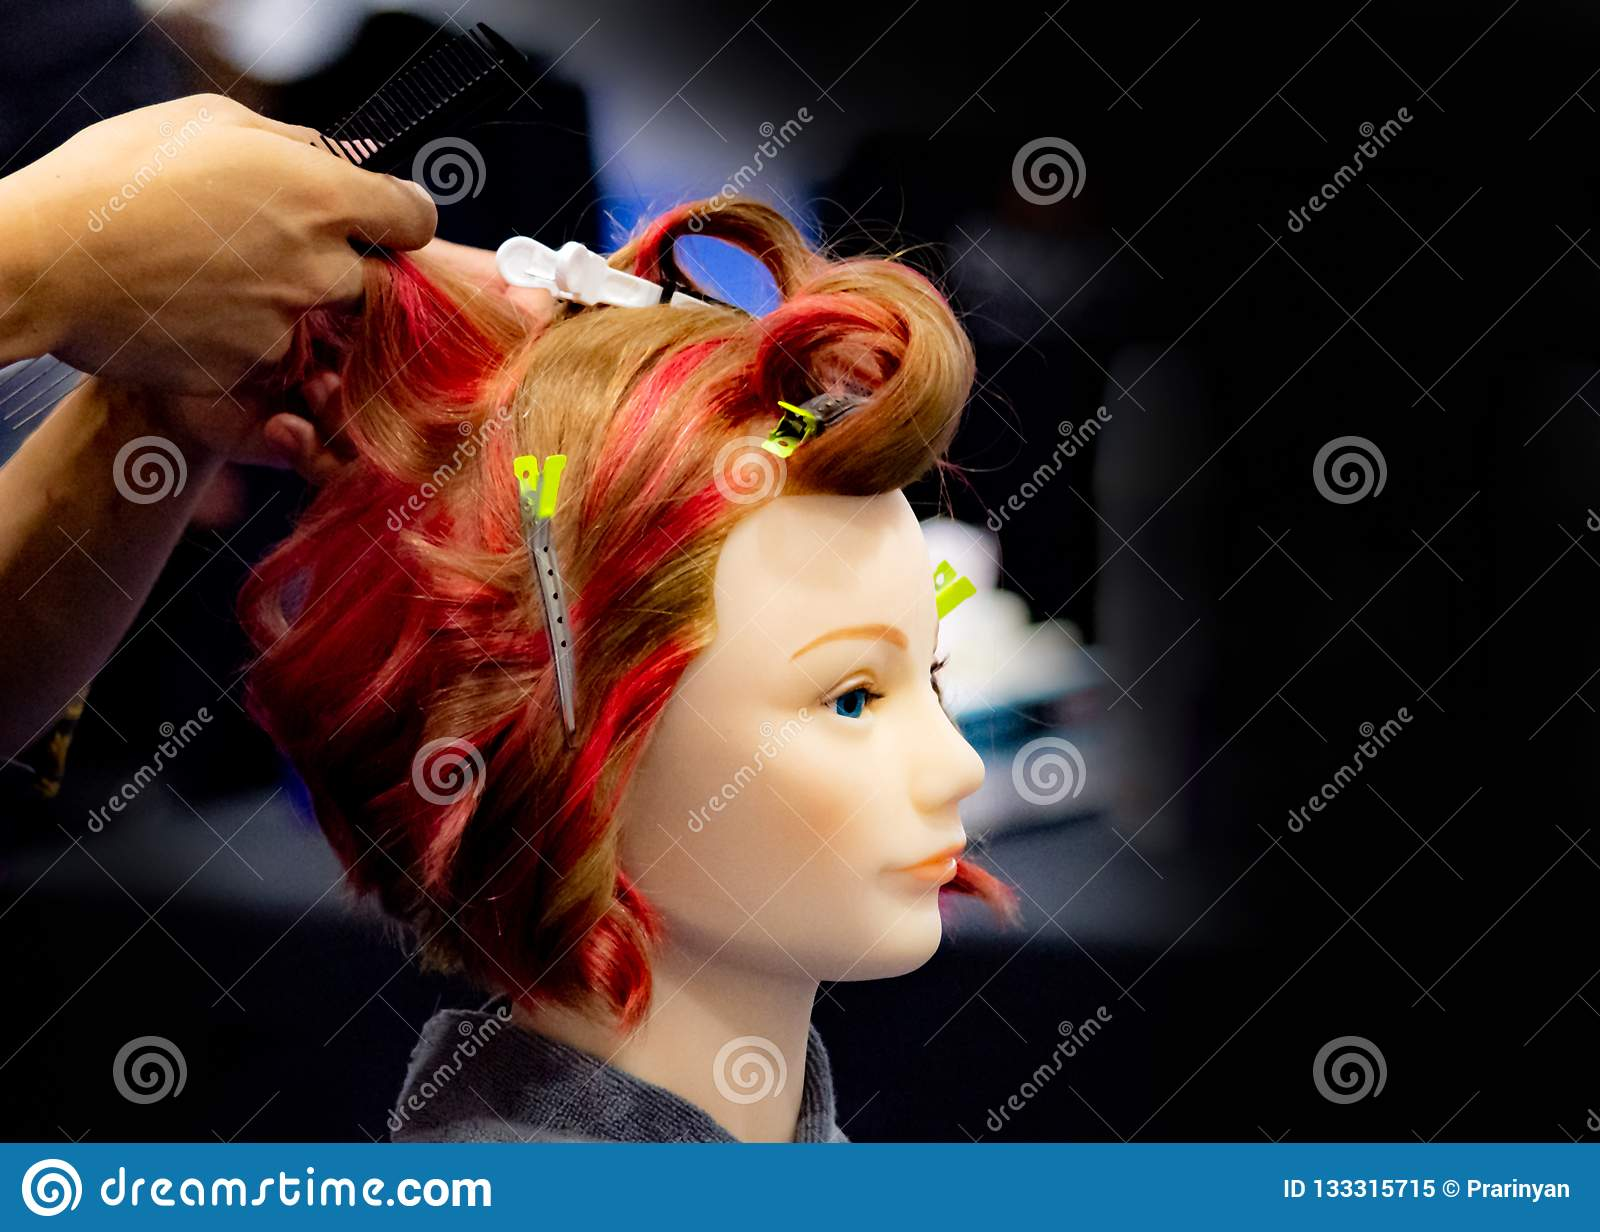 Hairstyles On Dummy Head Of Hair Salon Stock Image - Image ...